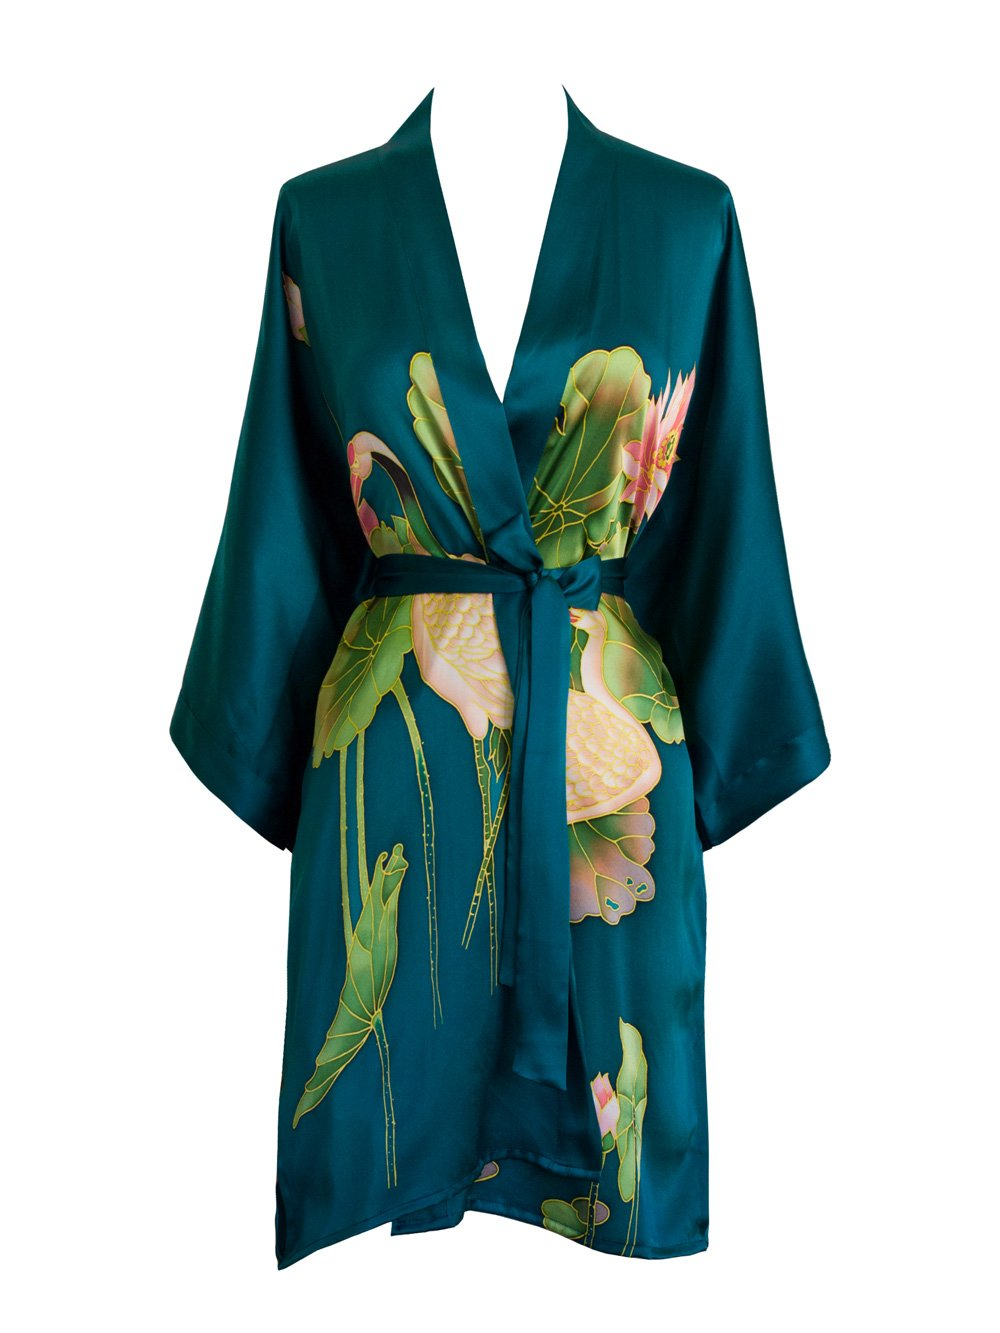 Old Shanghai Women's Silk Kimono Short Robe - Handpainted (Crane Teal)